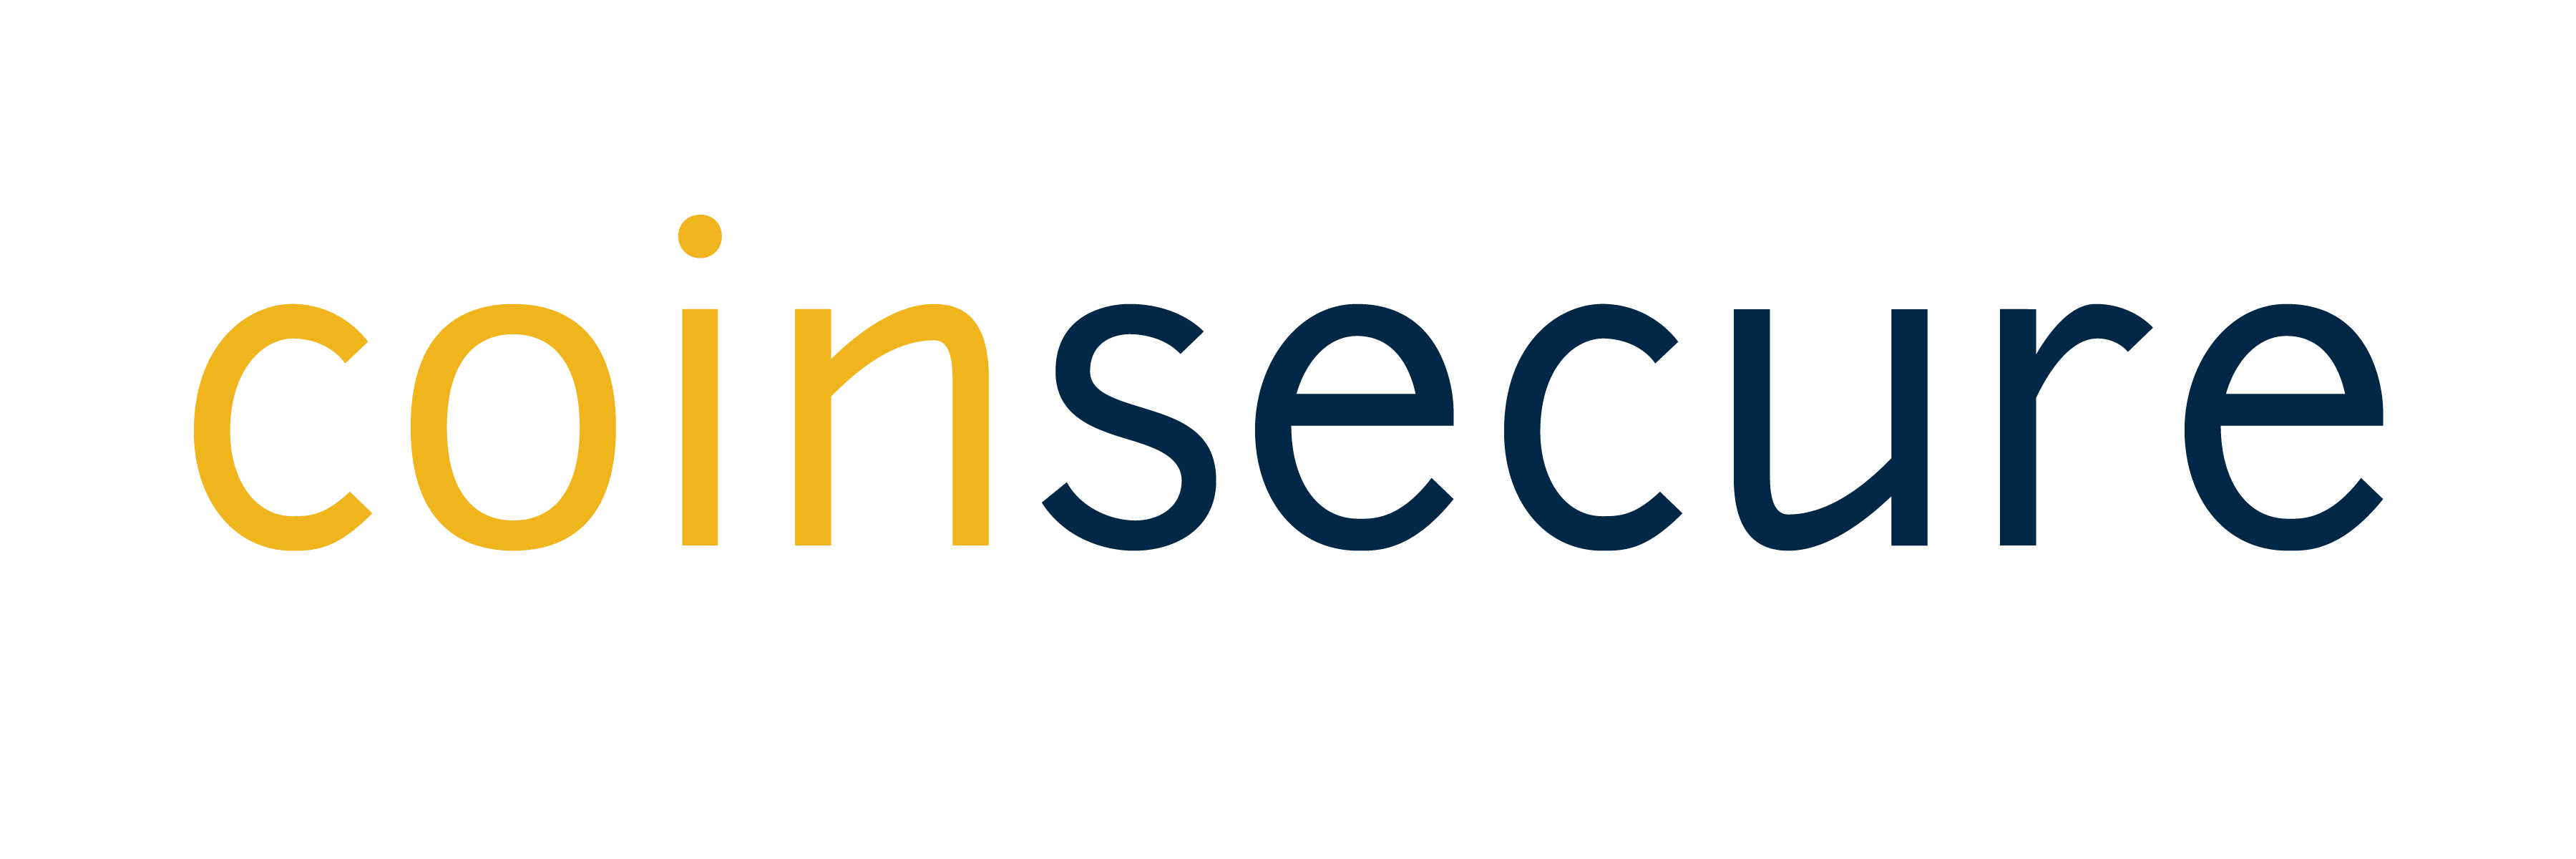 Coinsecure logo